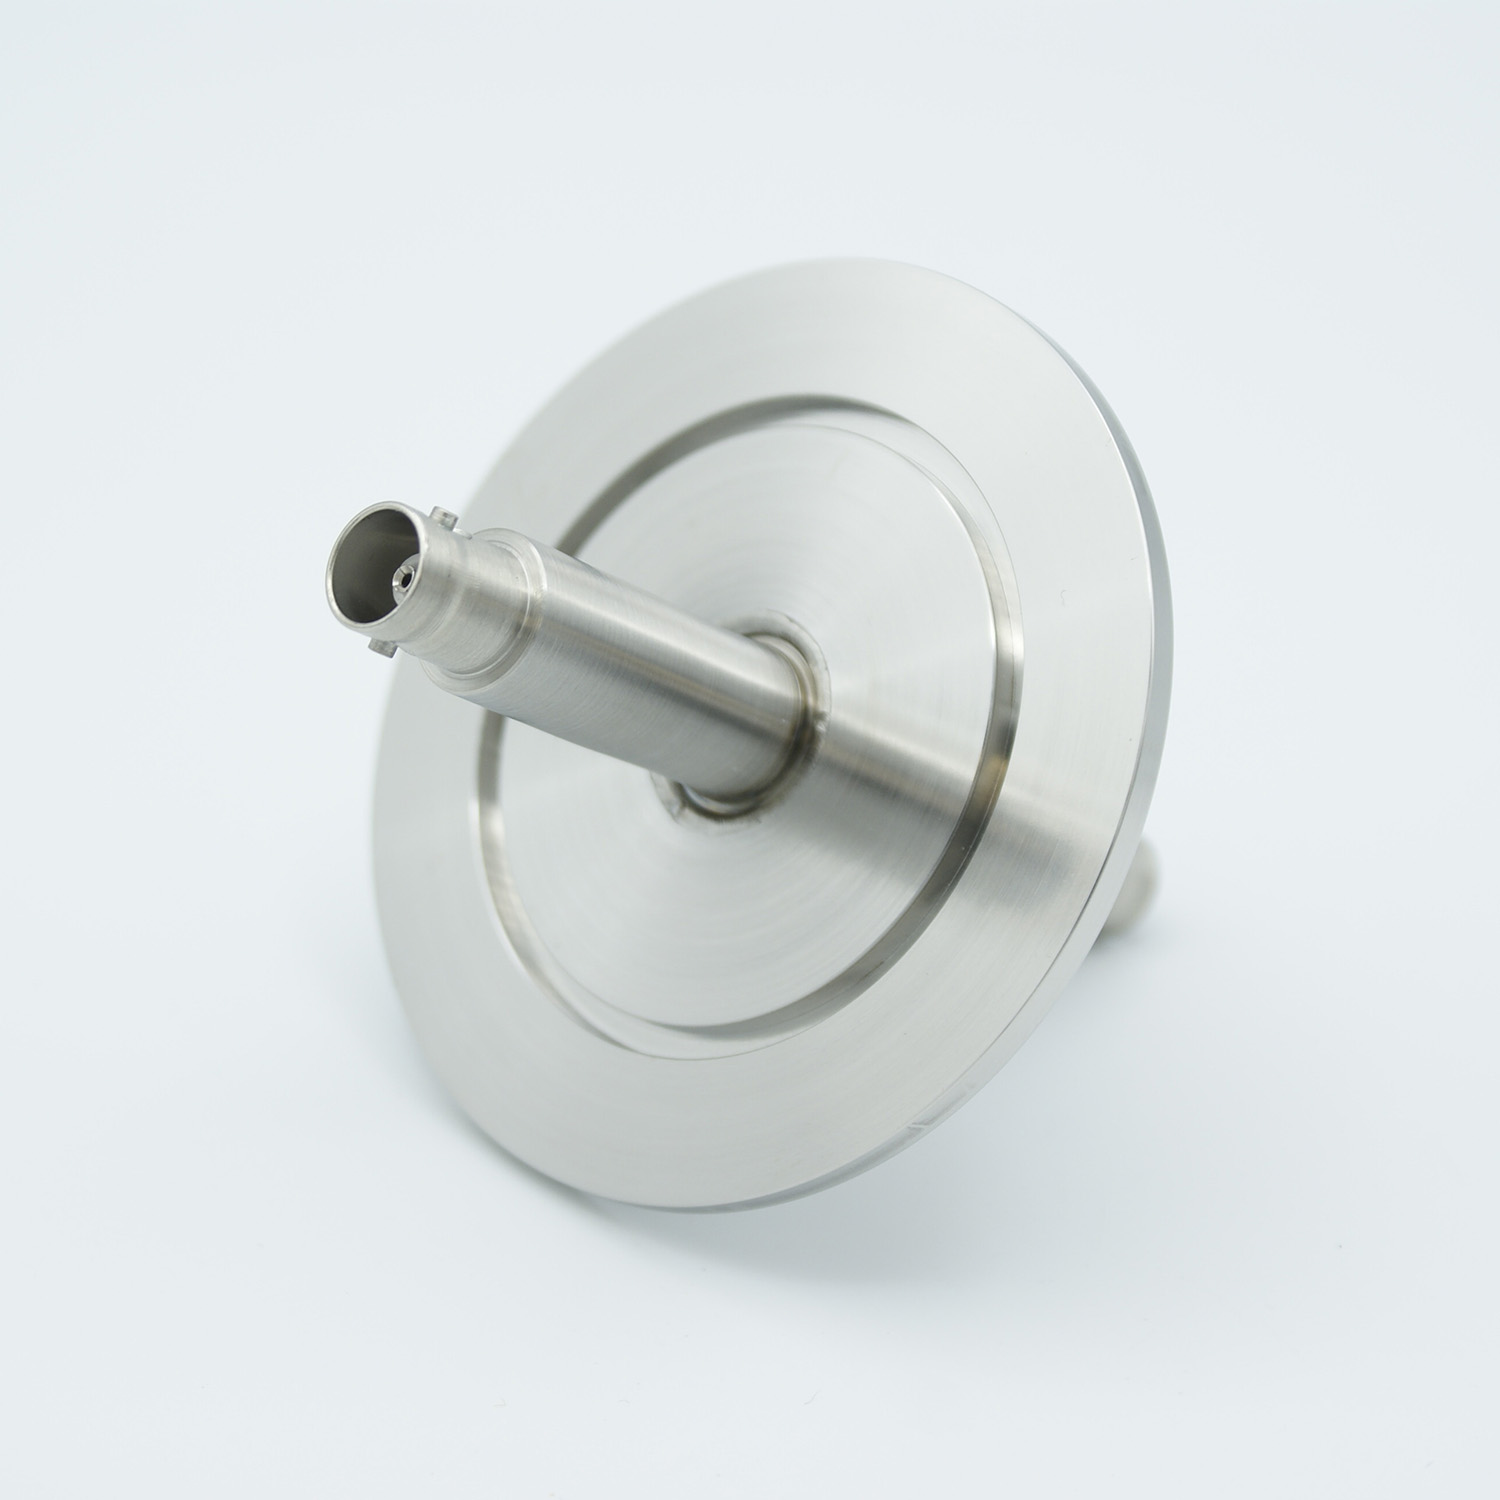 Grounded shield, double ended BNC feedthrough 500V 3 Amp, air side connector included, DN25KF flange